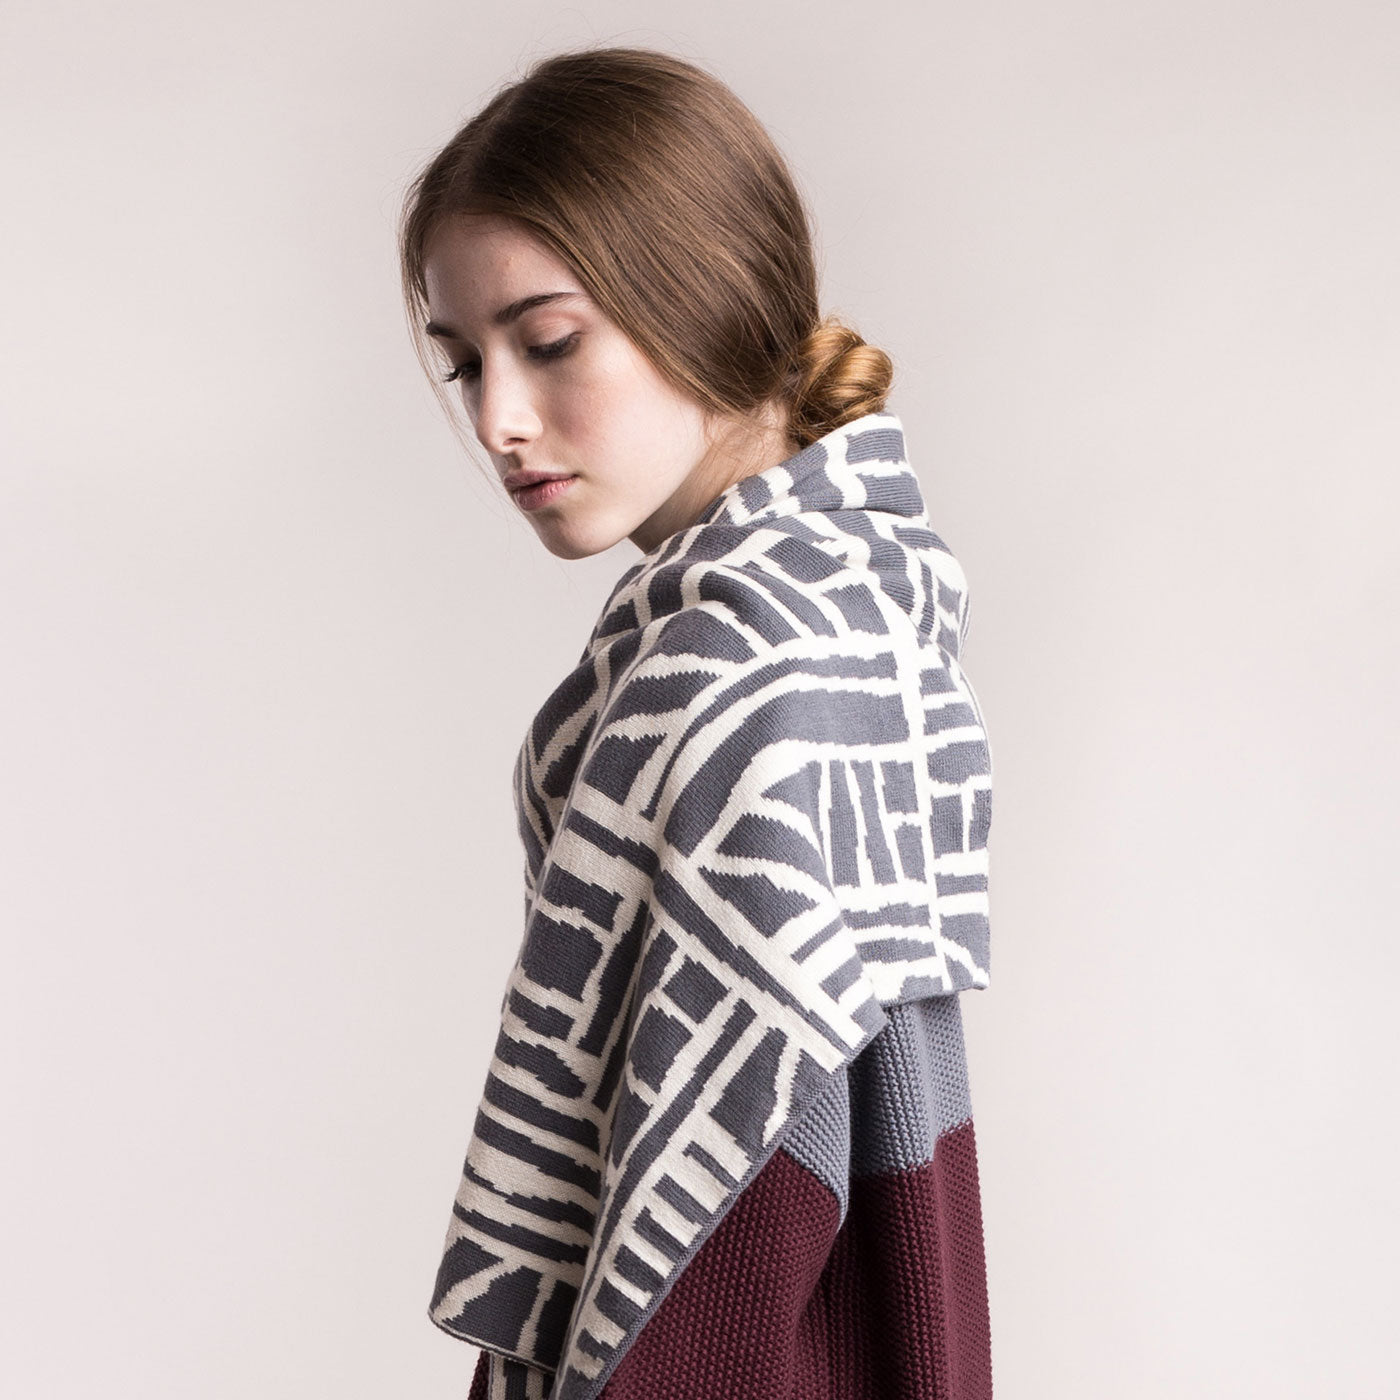 The model wears a grey and cream, sustainable organic cotton, knitted arty bricks scarf, looks to the side.